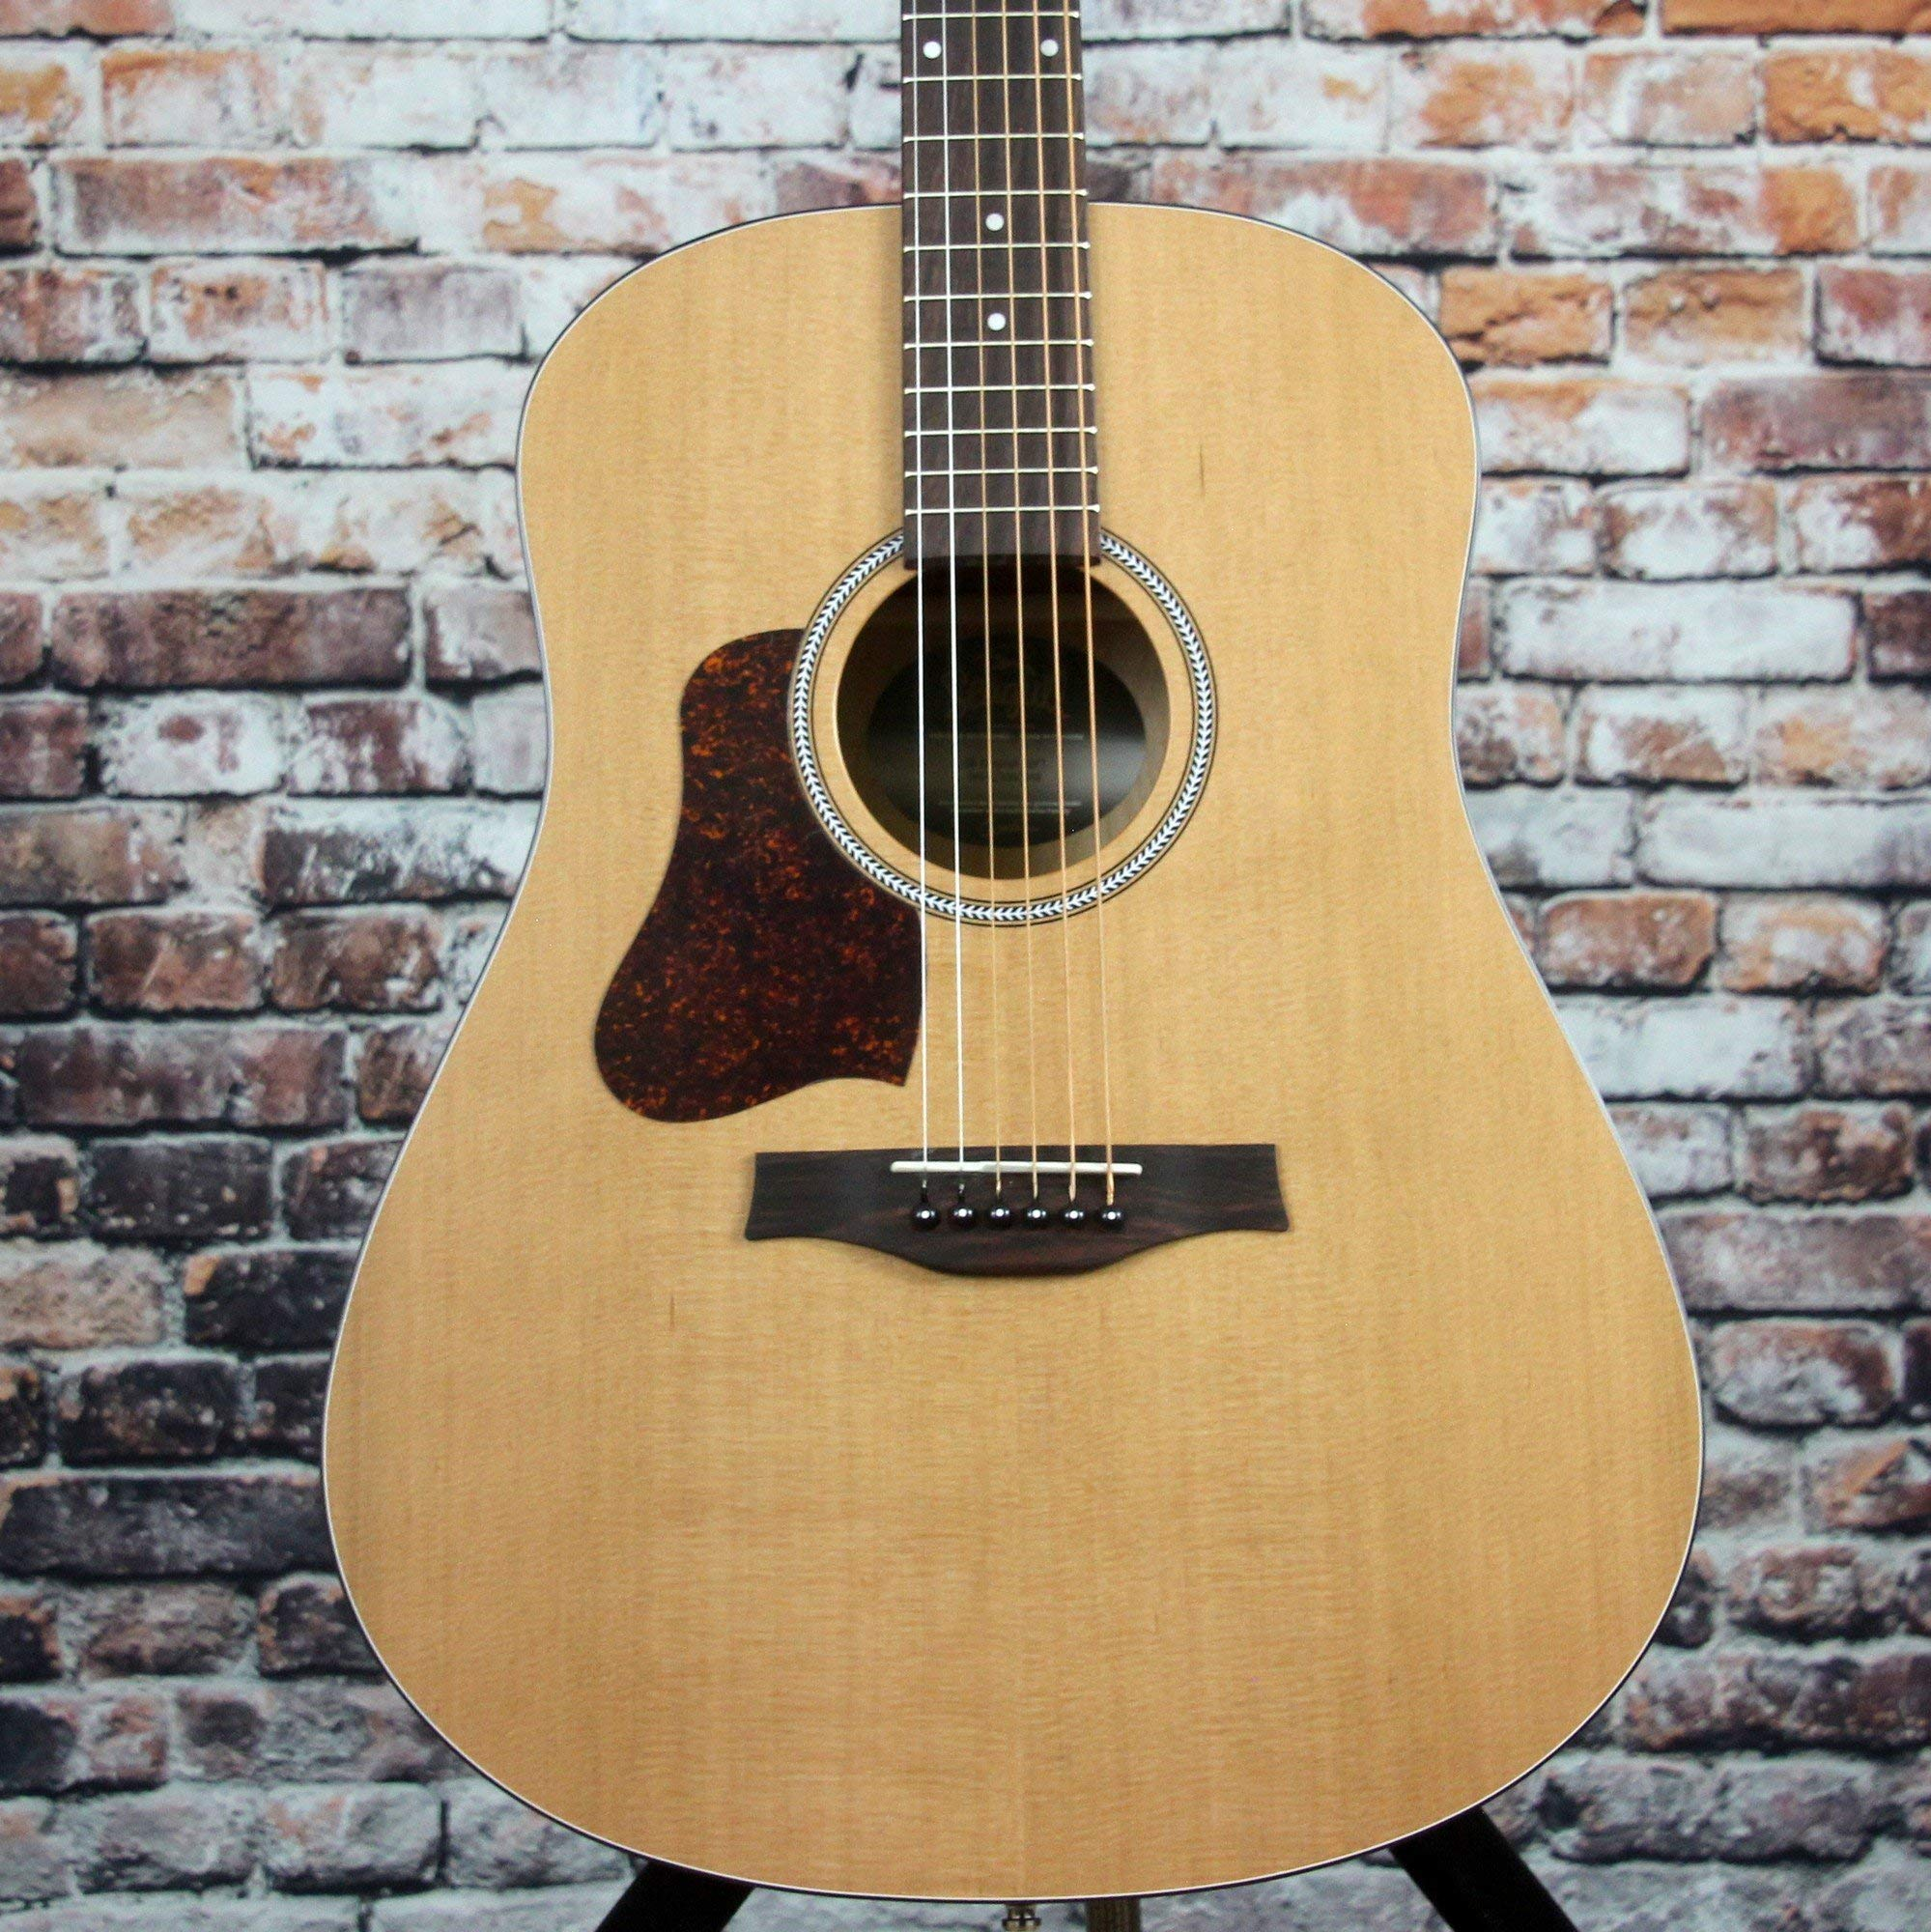 Seagull S6 Original Left-Handed Acoustic Guitar by Seagull